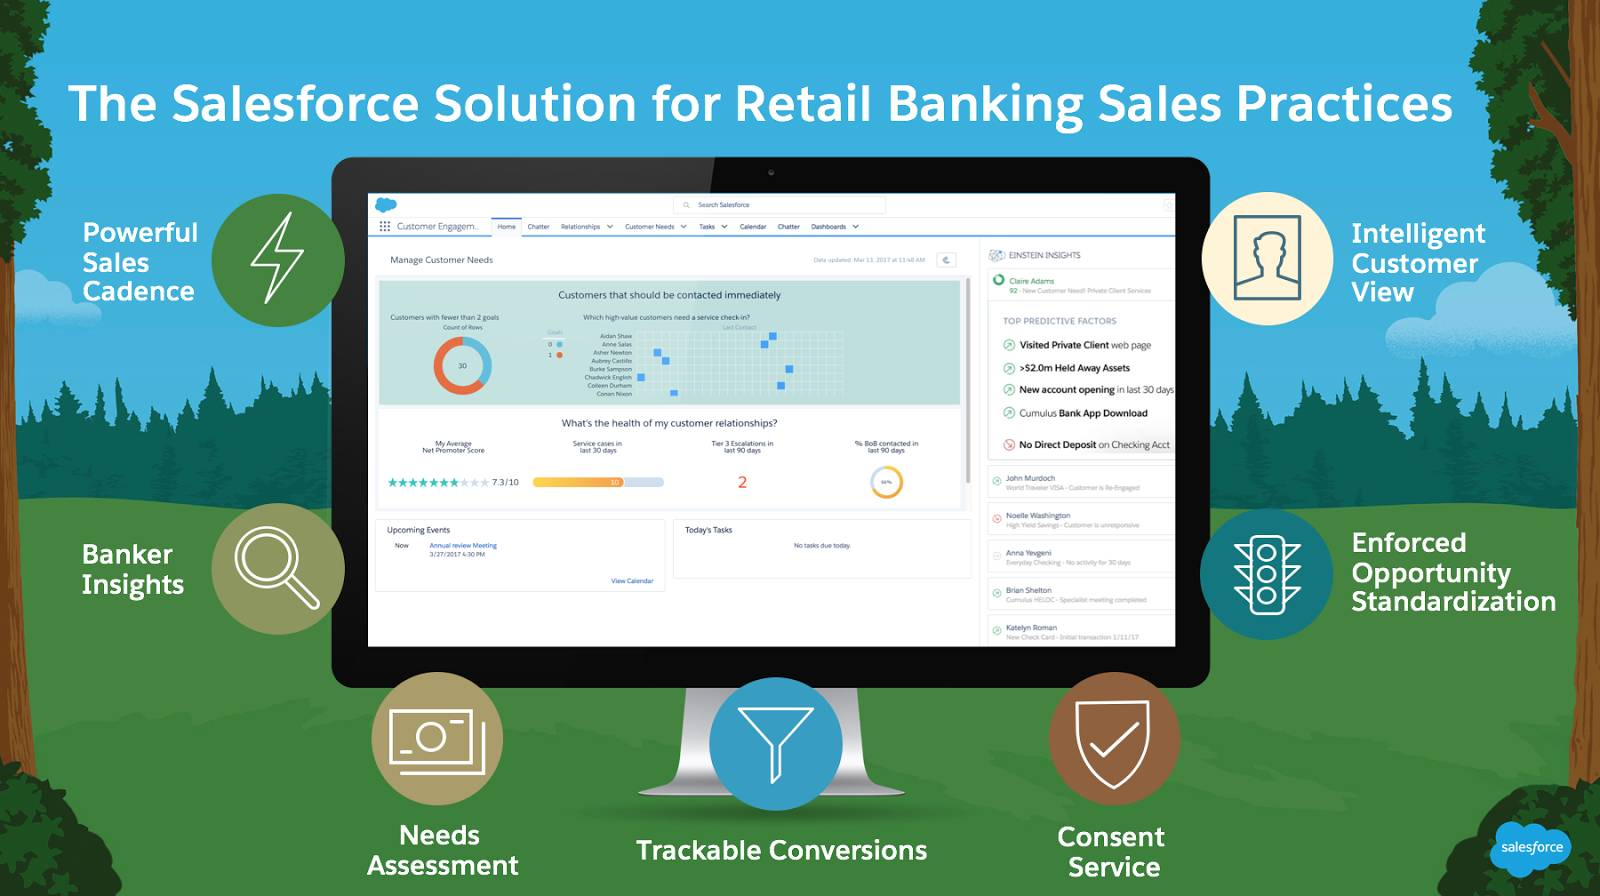 A picture of the Salesforce platform surrounded by icons representing sales cadence, real-time insights, needs assessments, trackable conversions, consent service, enforced opportunity standardization, and an intelligent customer view